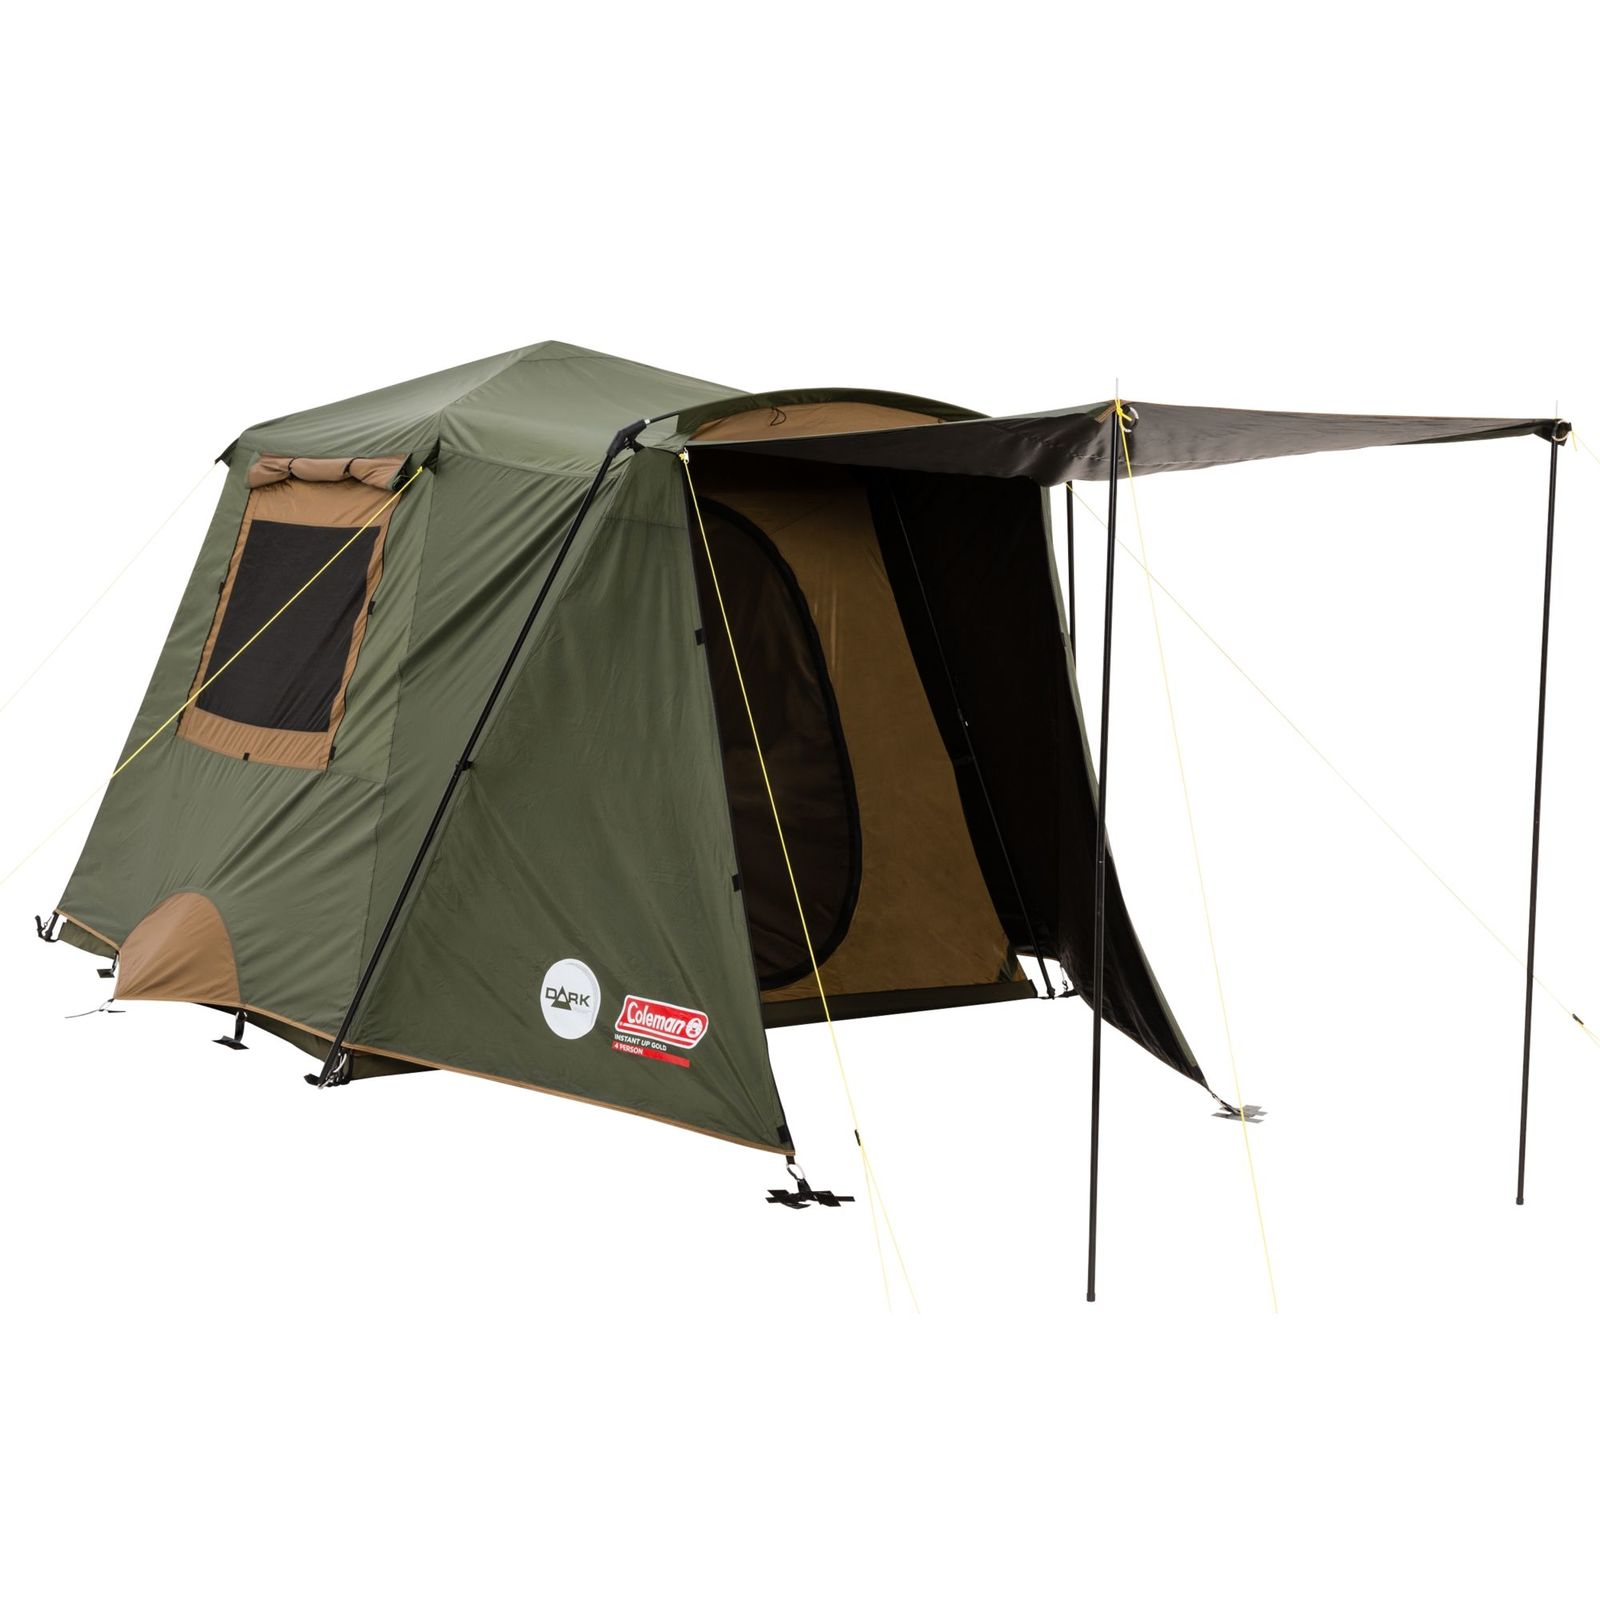 COleman instant tent 4 person 1  sc 1 st  Outback Review & Best 4 Person Tents 2018 u2014 Outback Review